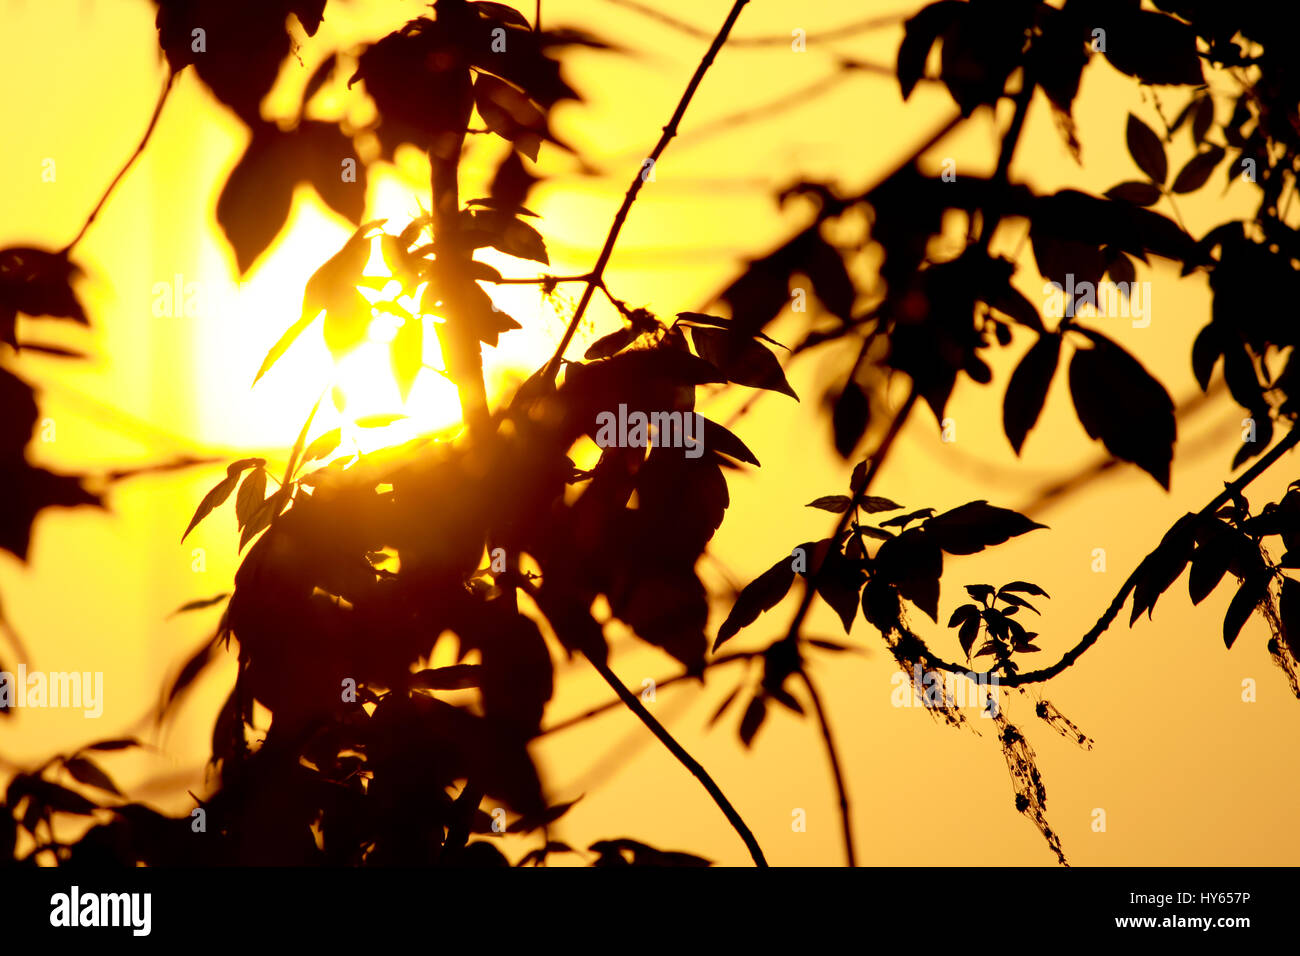 Sunlight through branches and leaves. - Stock Image